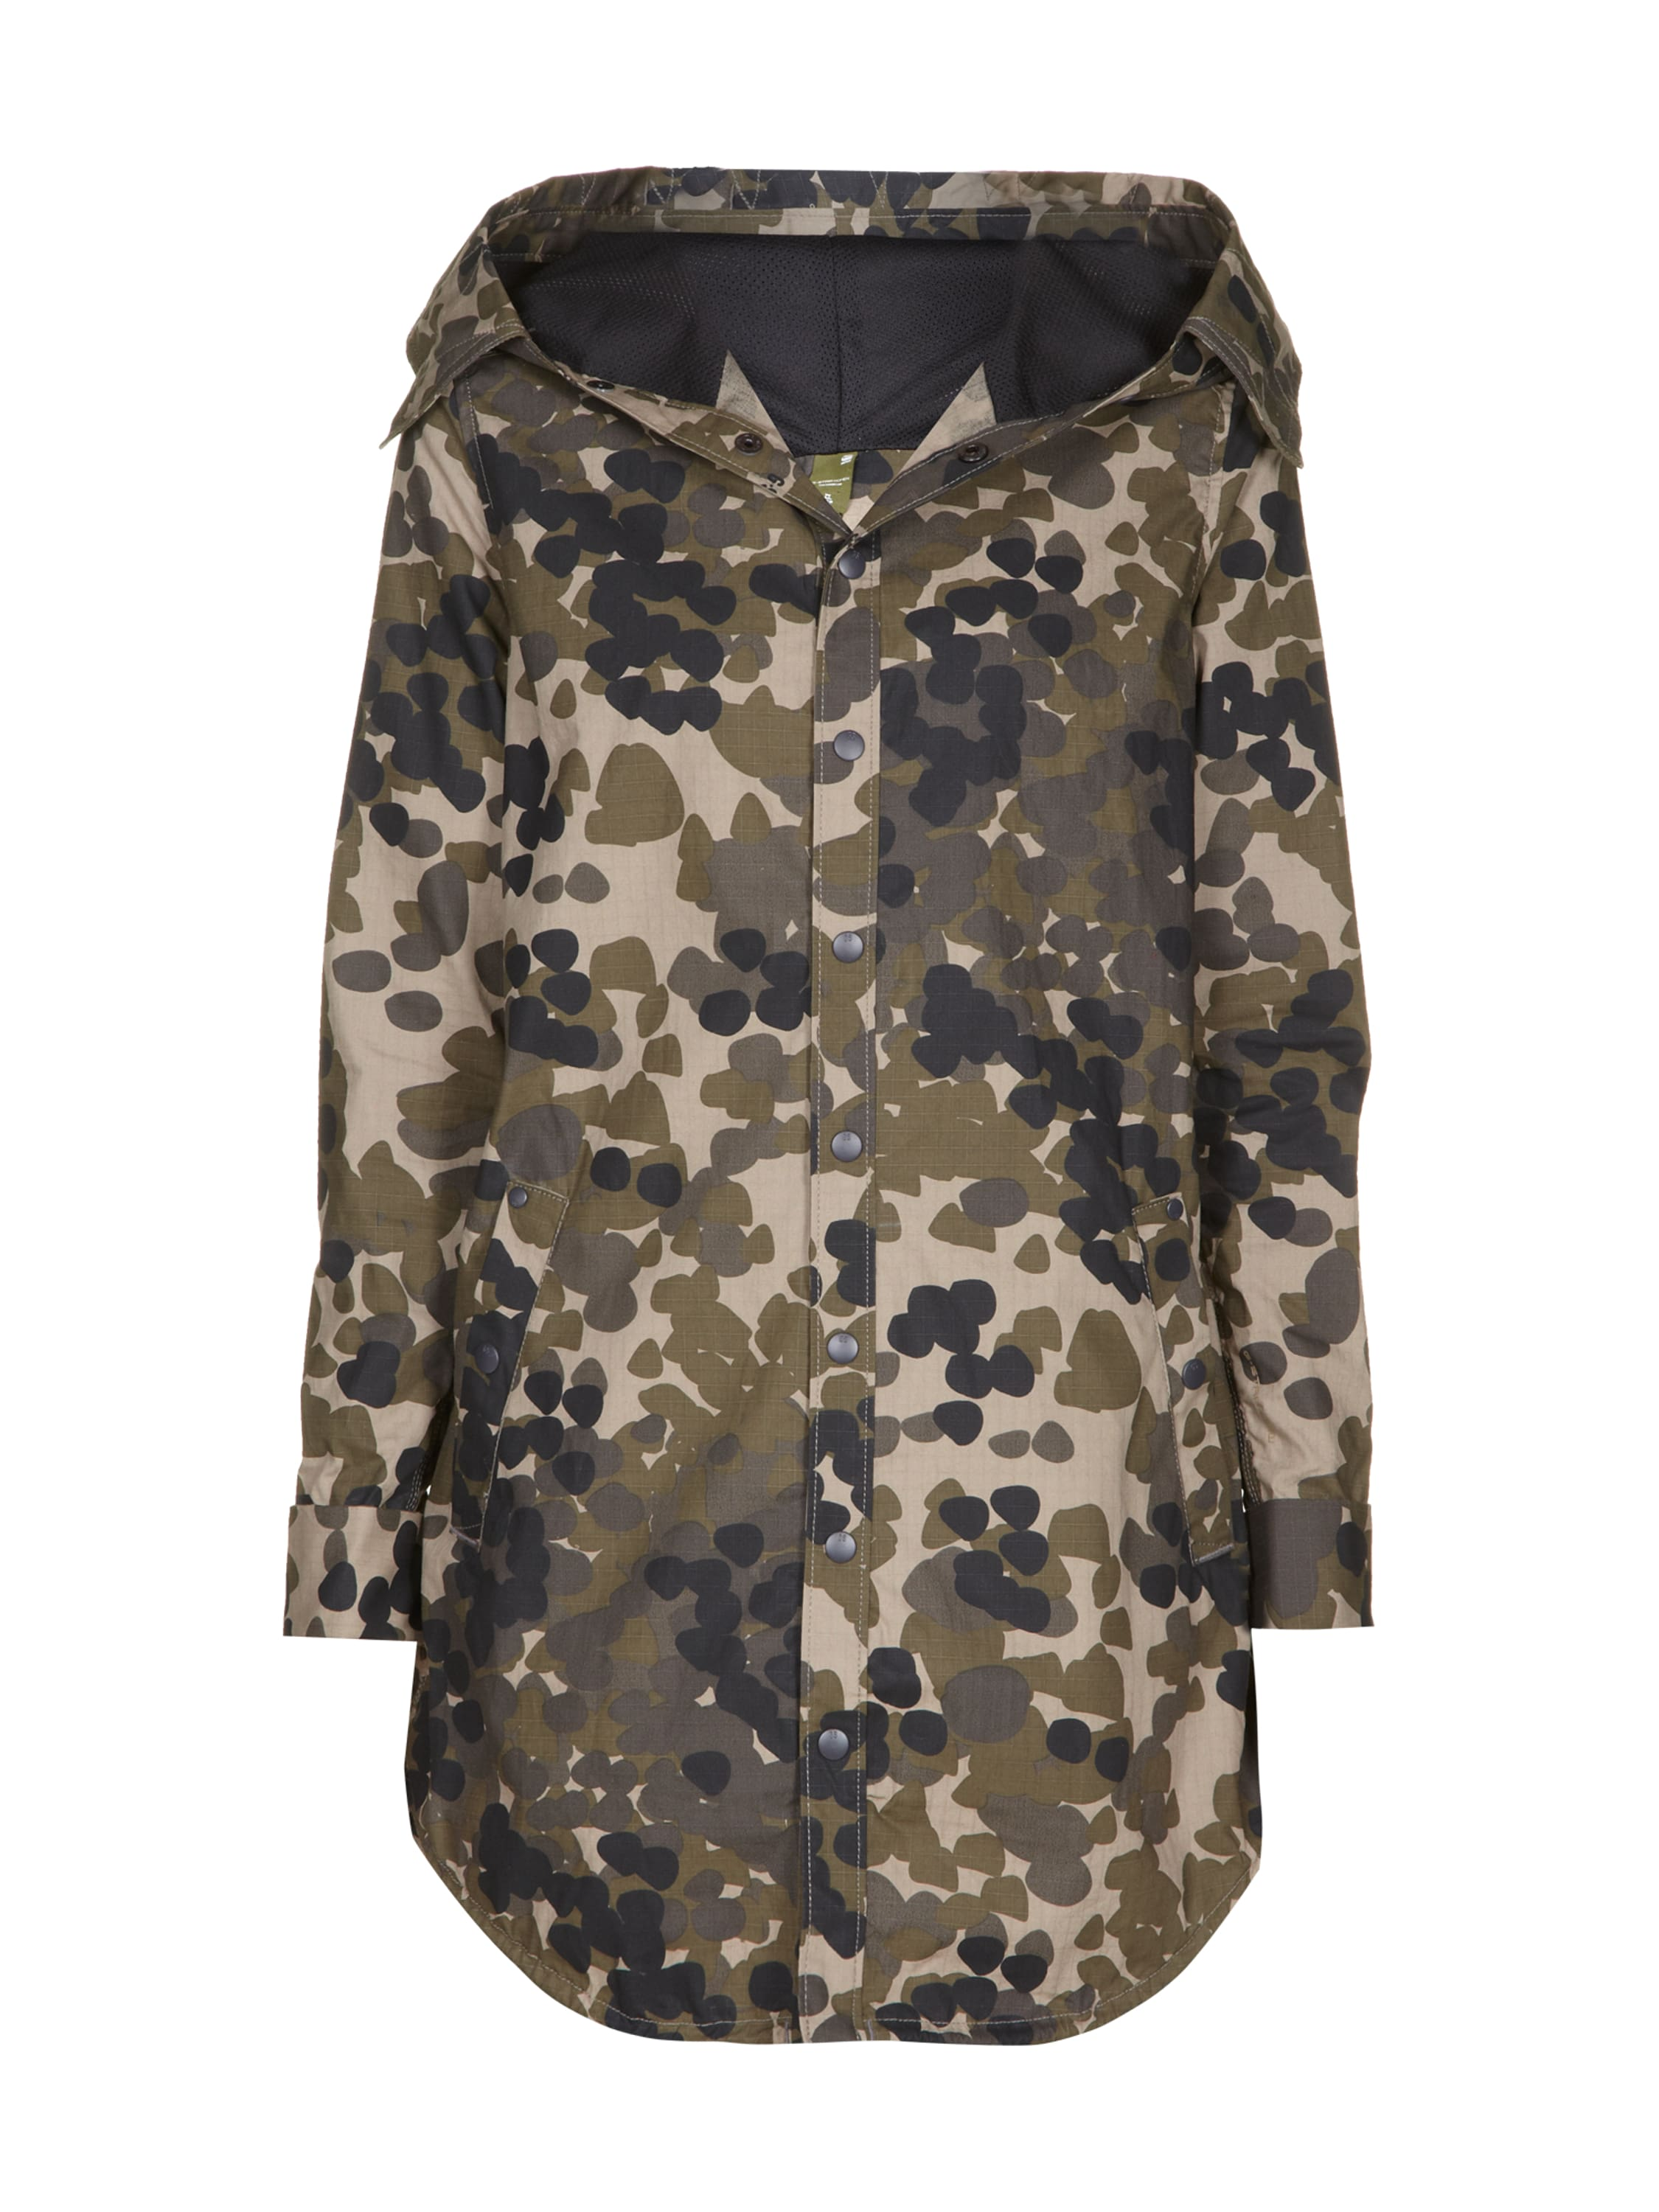 g star raw parka mit camouflage muster in gr n online kaufen 8953533 p c online shop. Black Bedroom Furniture Sets. Home Design Ideas